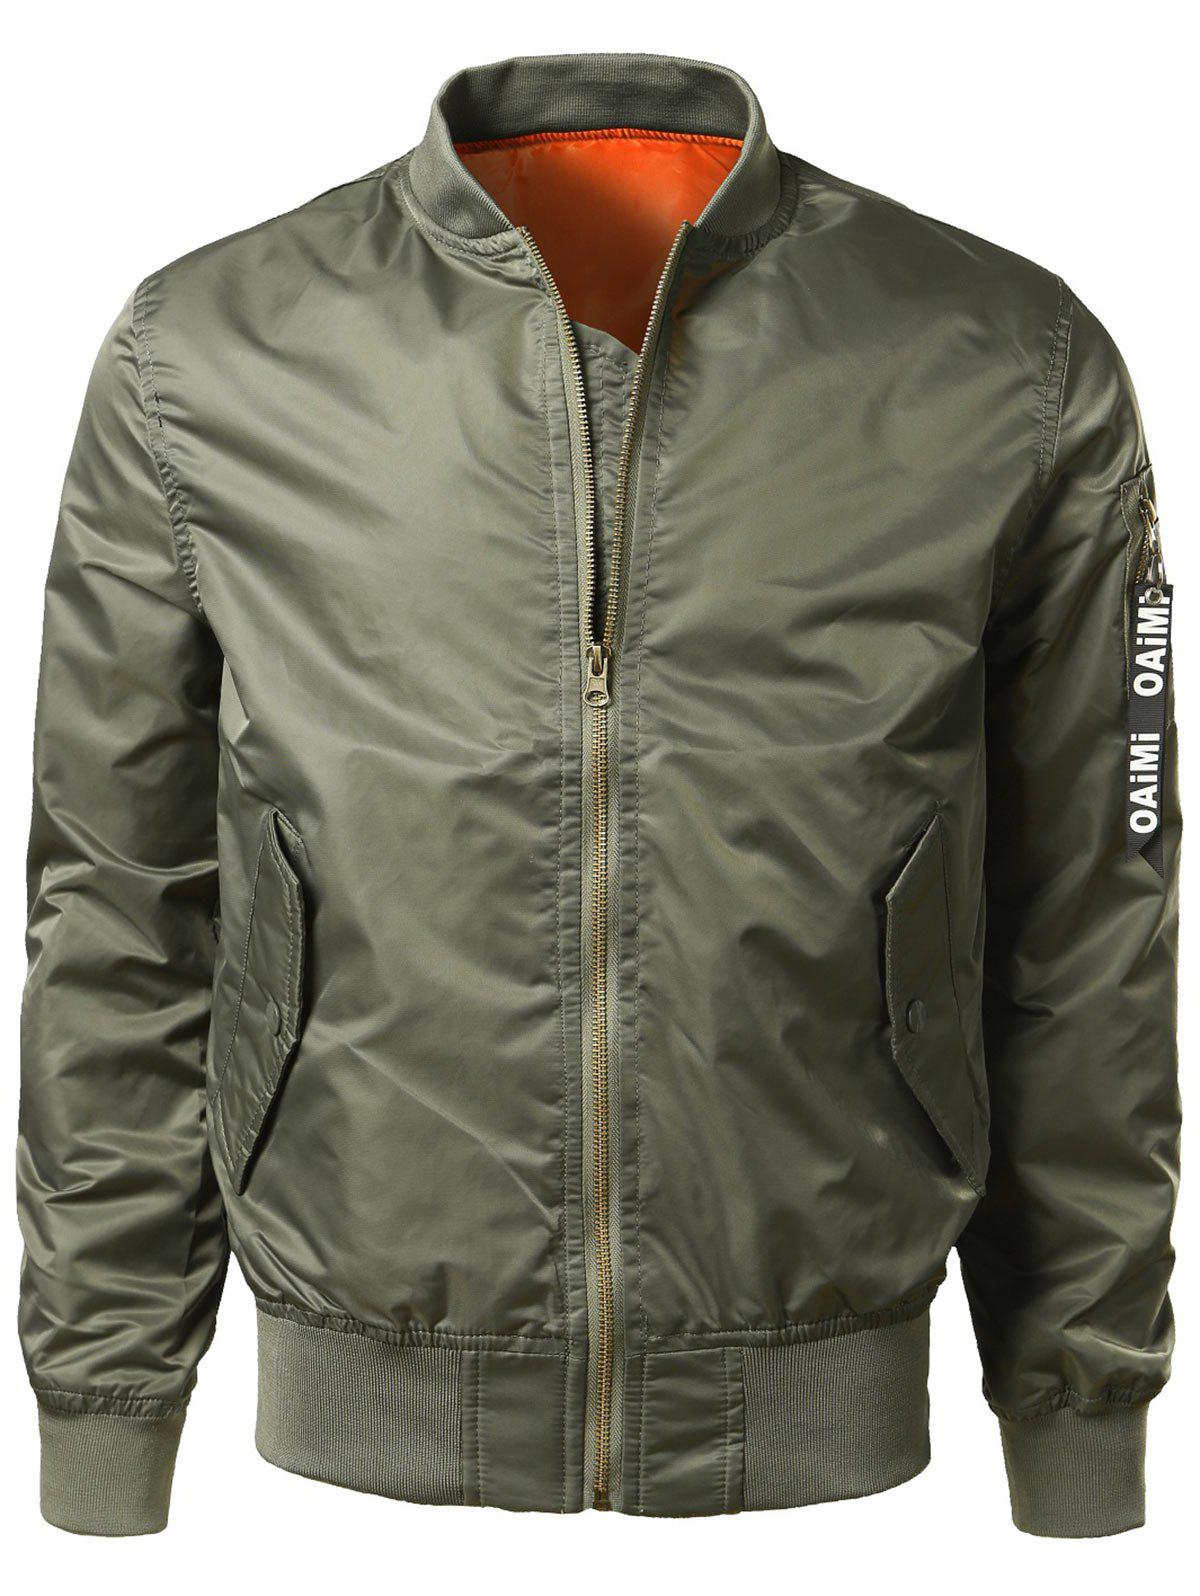 Zipper Up Bomber Jacket with Pocket DetailMEN<br><br>Size: L; Color: ARMY GREEN; Clothes Type: Jackets; Style: Casual; Material: Nylon,Polyester; Collar: Stand Collar; Shirt Length: Regular; Sleeve Length: Long Sleeves; Season: Fall,Spring,Winter; Weight: 0.4500kg; Package Contents: 1 x Jacket;